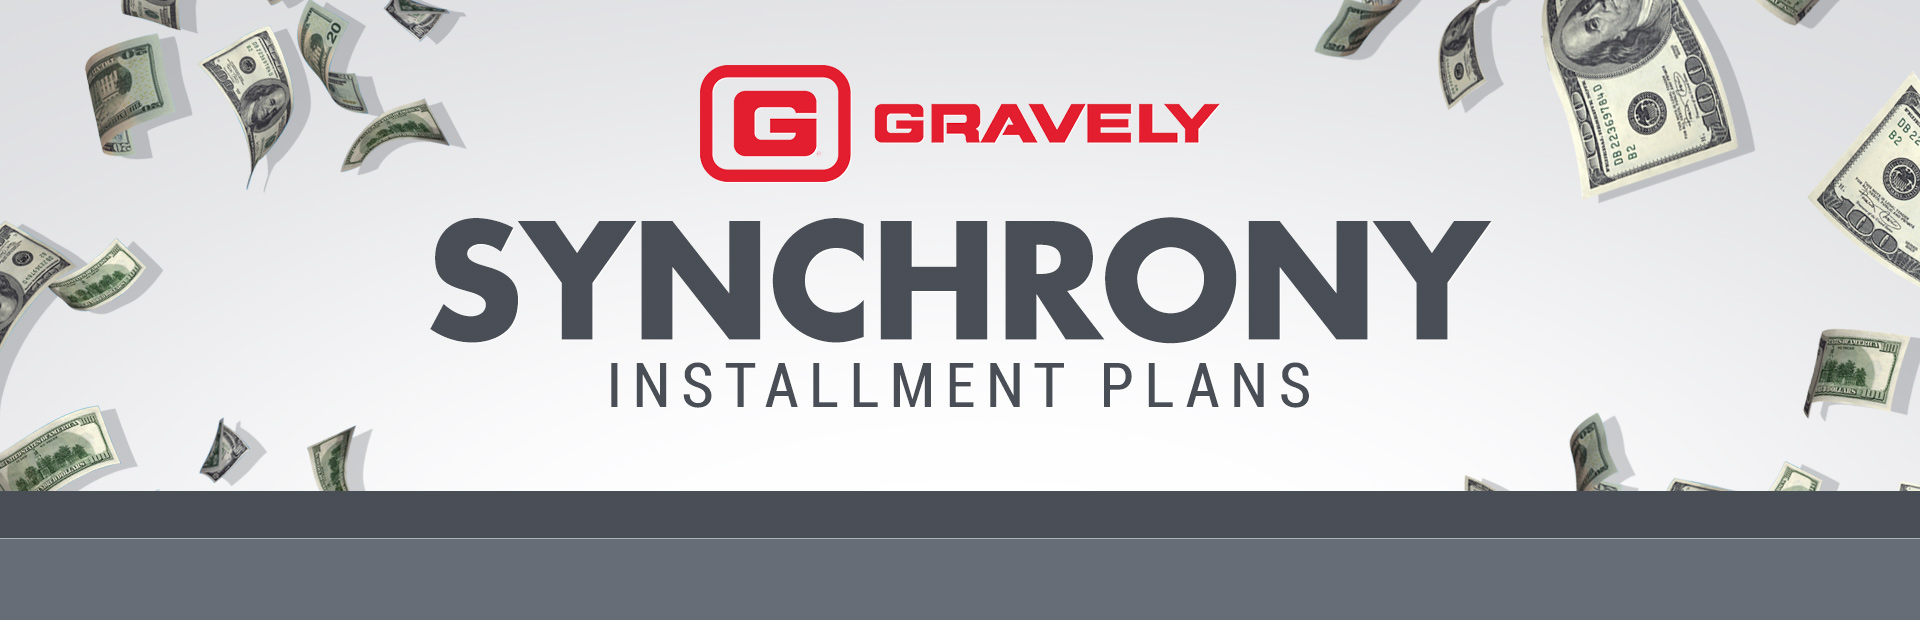 Gravely: Synchrony - Installment Plans